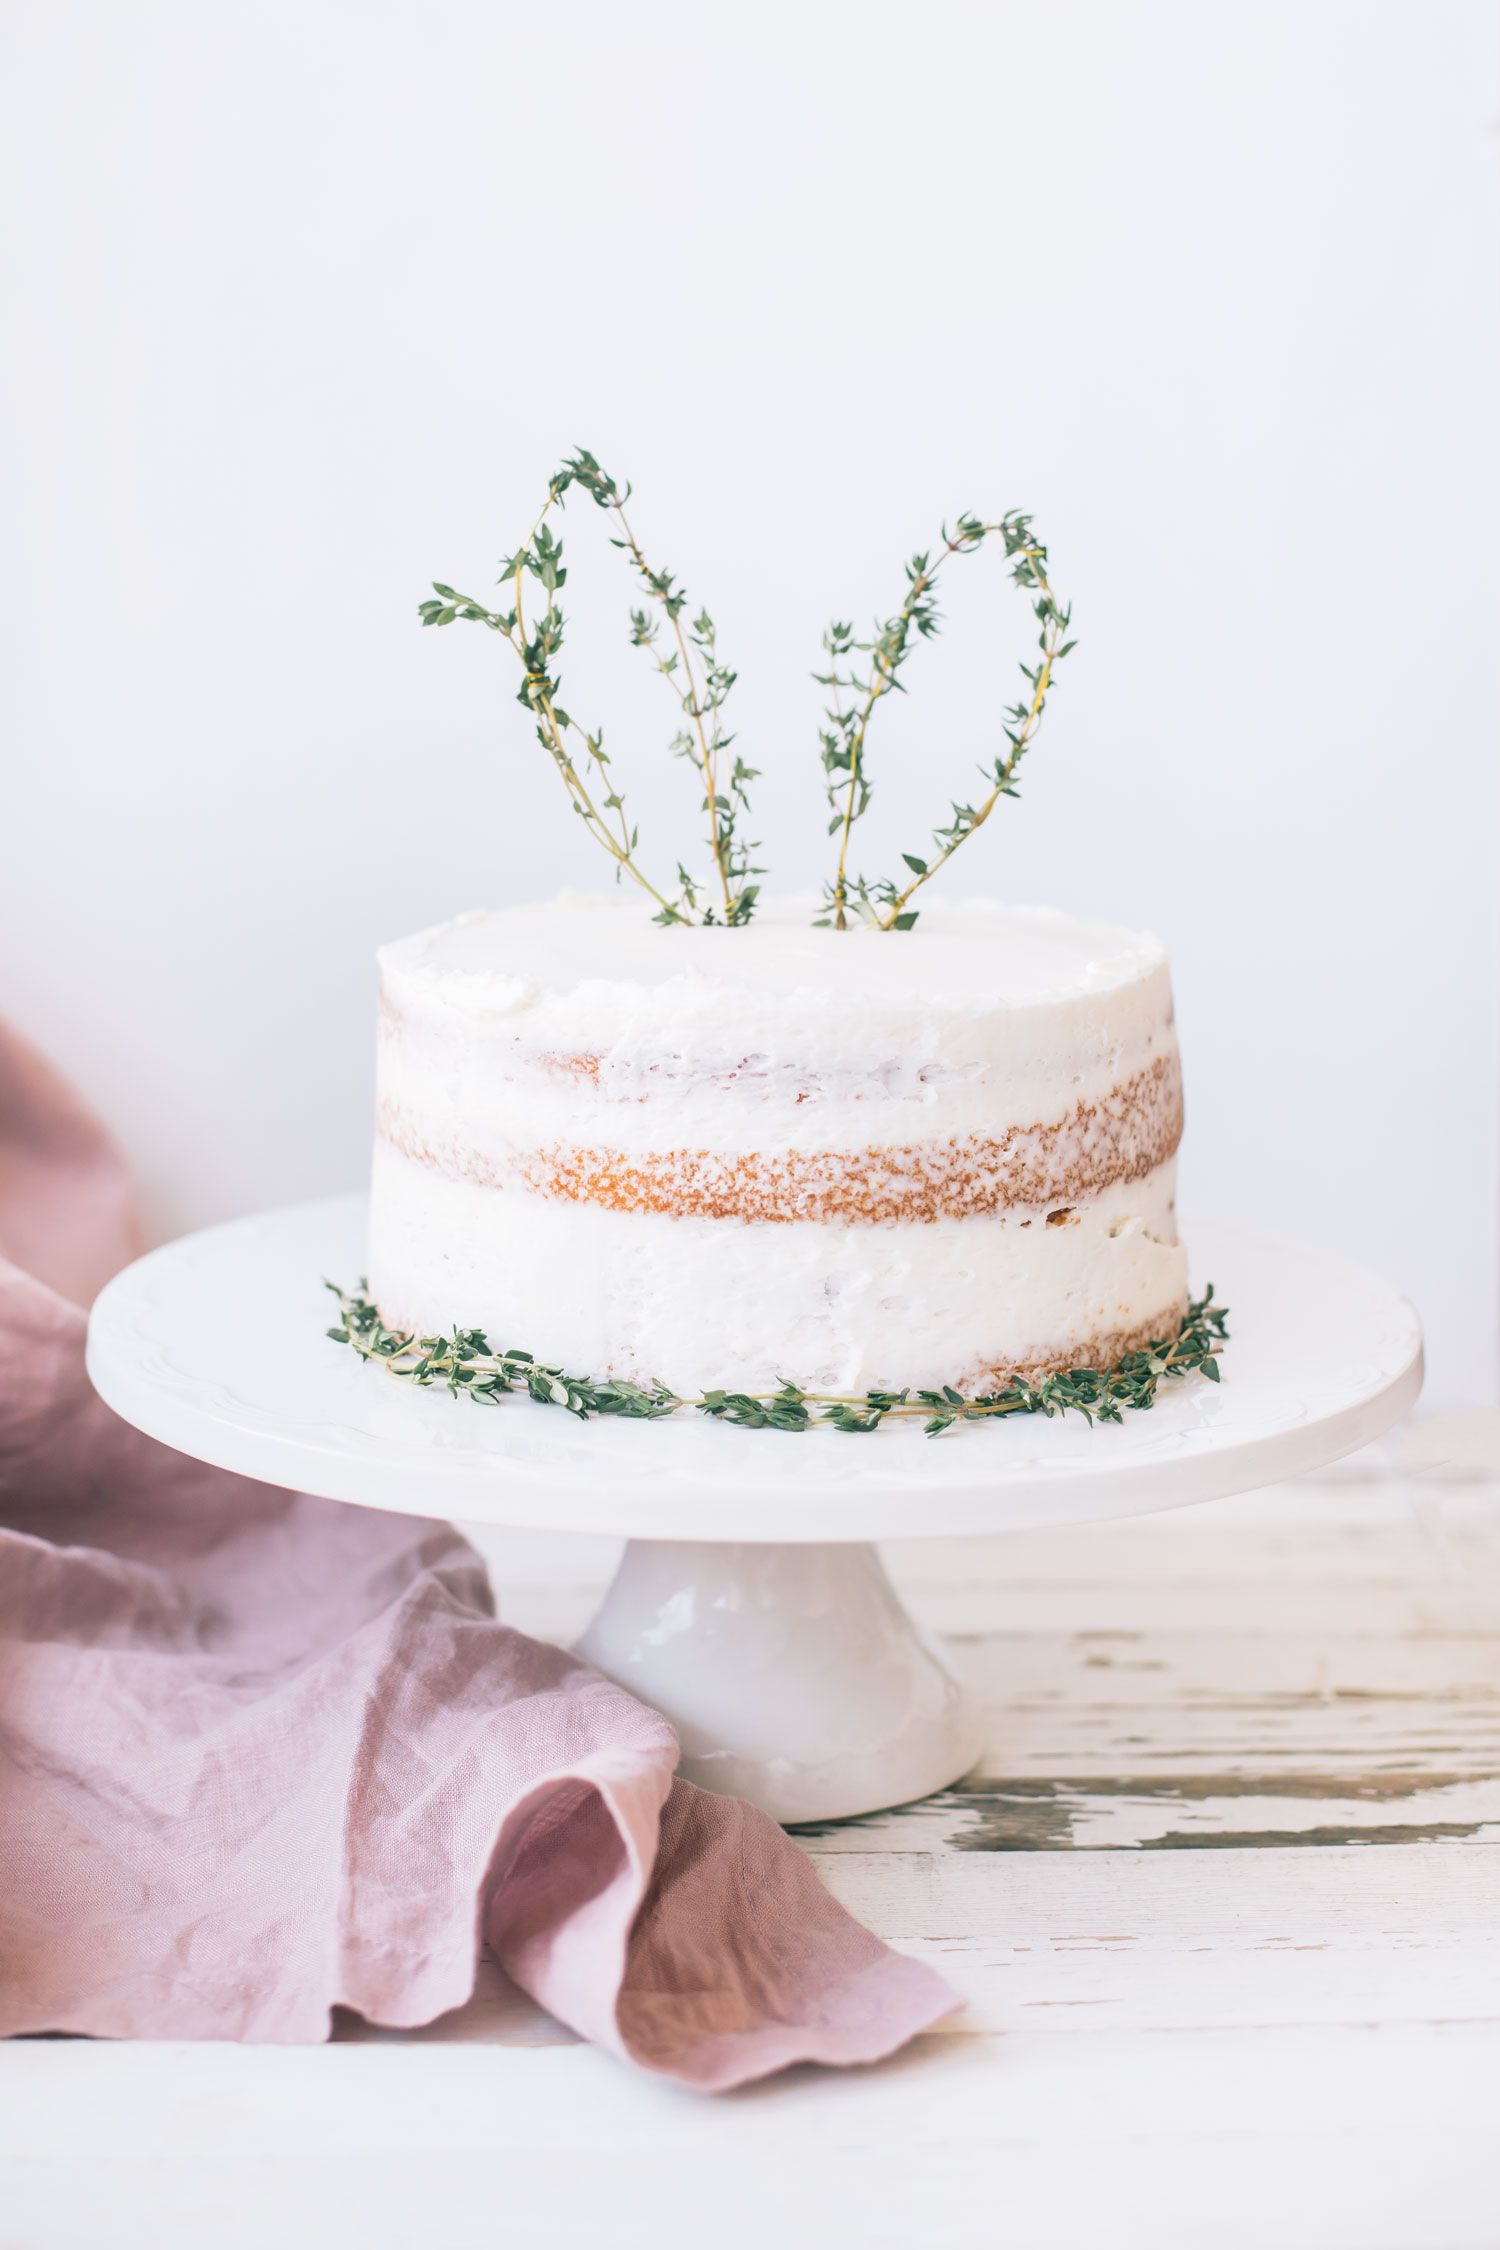 Easy Easter DIY: Thyme Bunny Ear Cake Topper   The Blondielocks   Life + Style